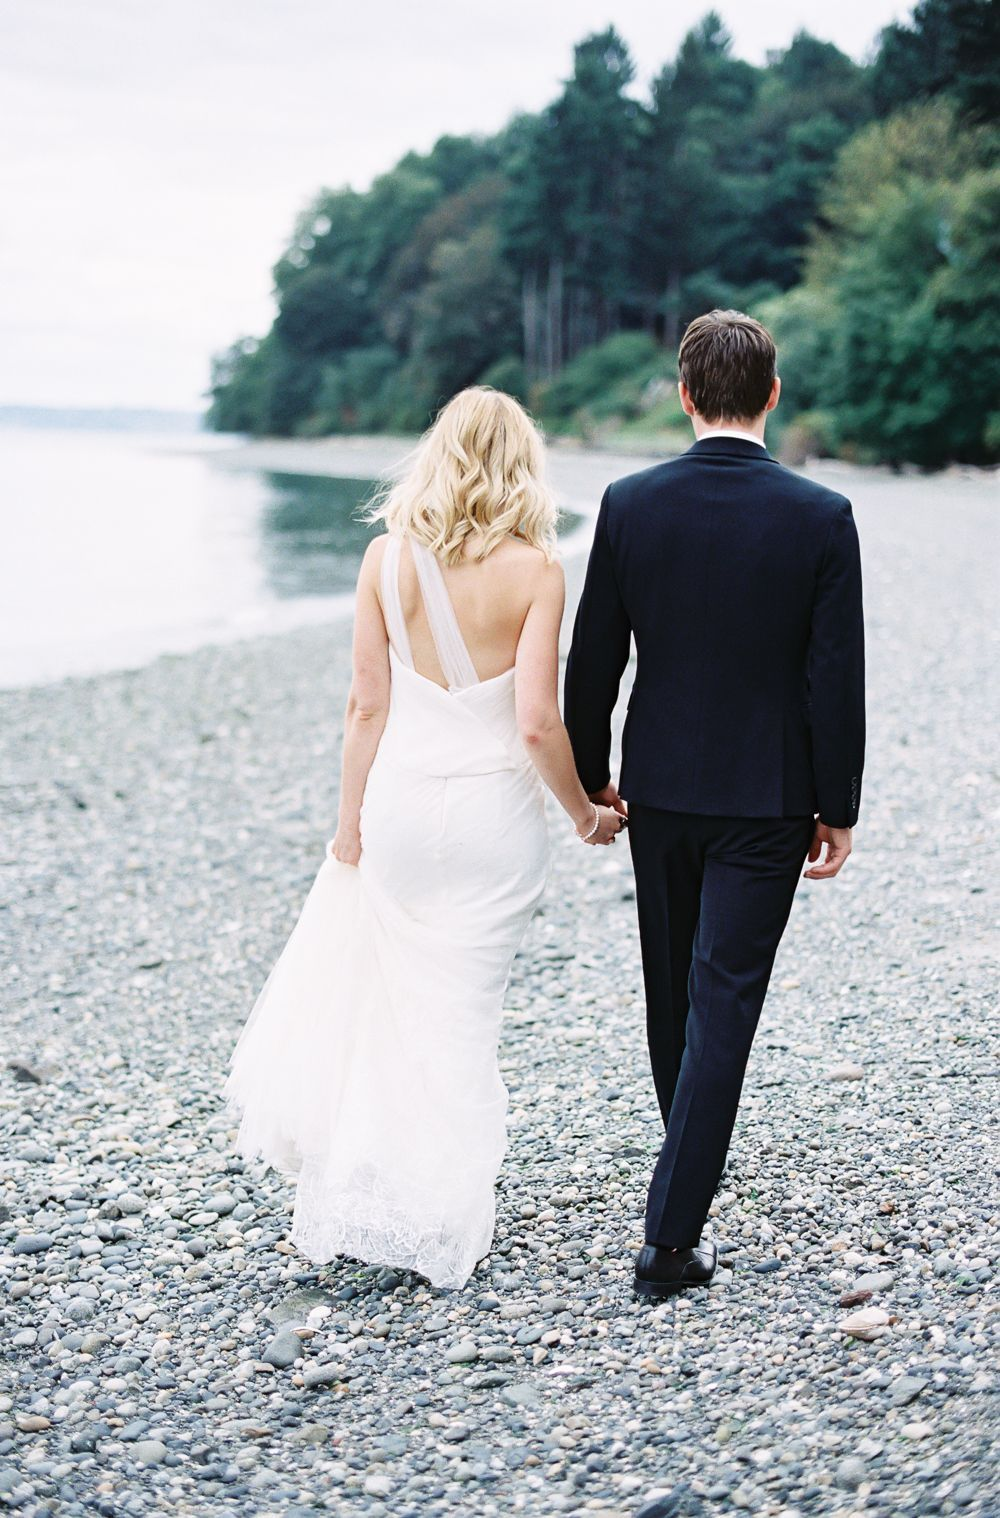 17-romantic-beach-wedding-inspiration